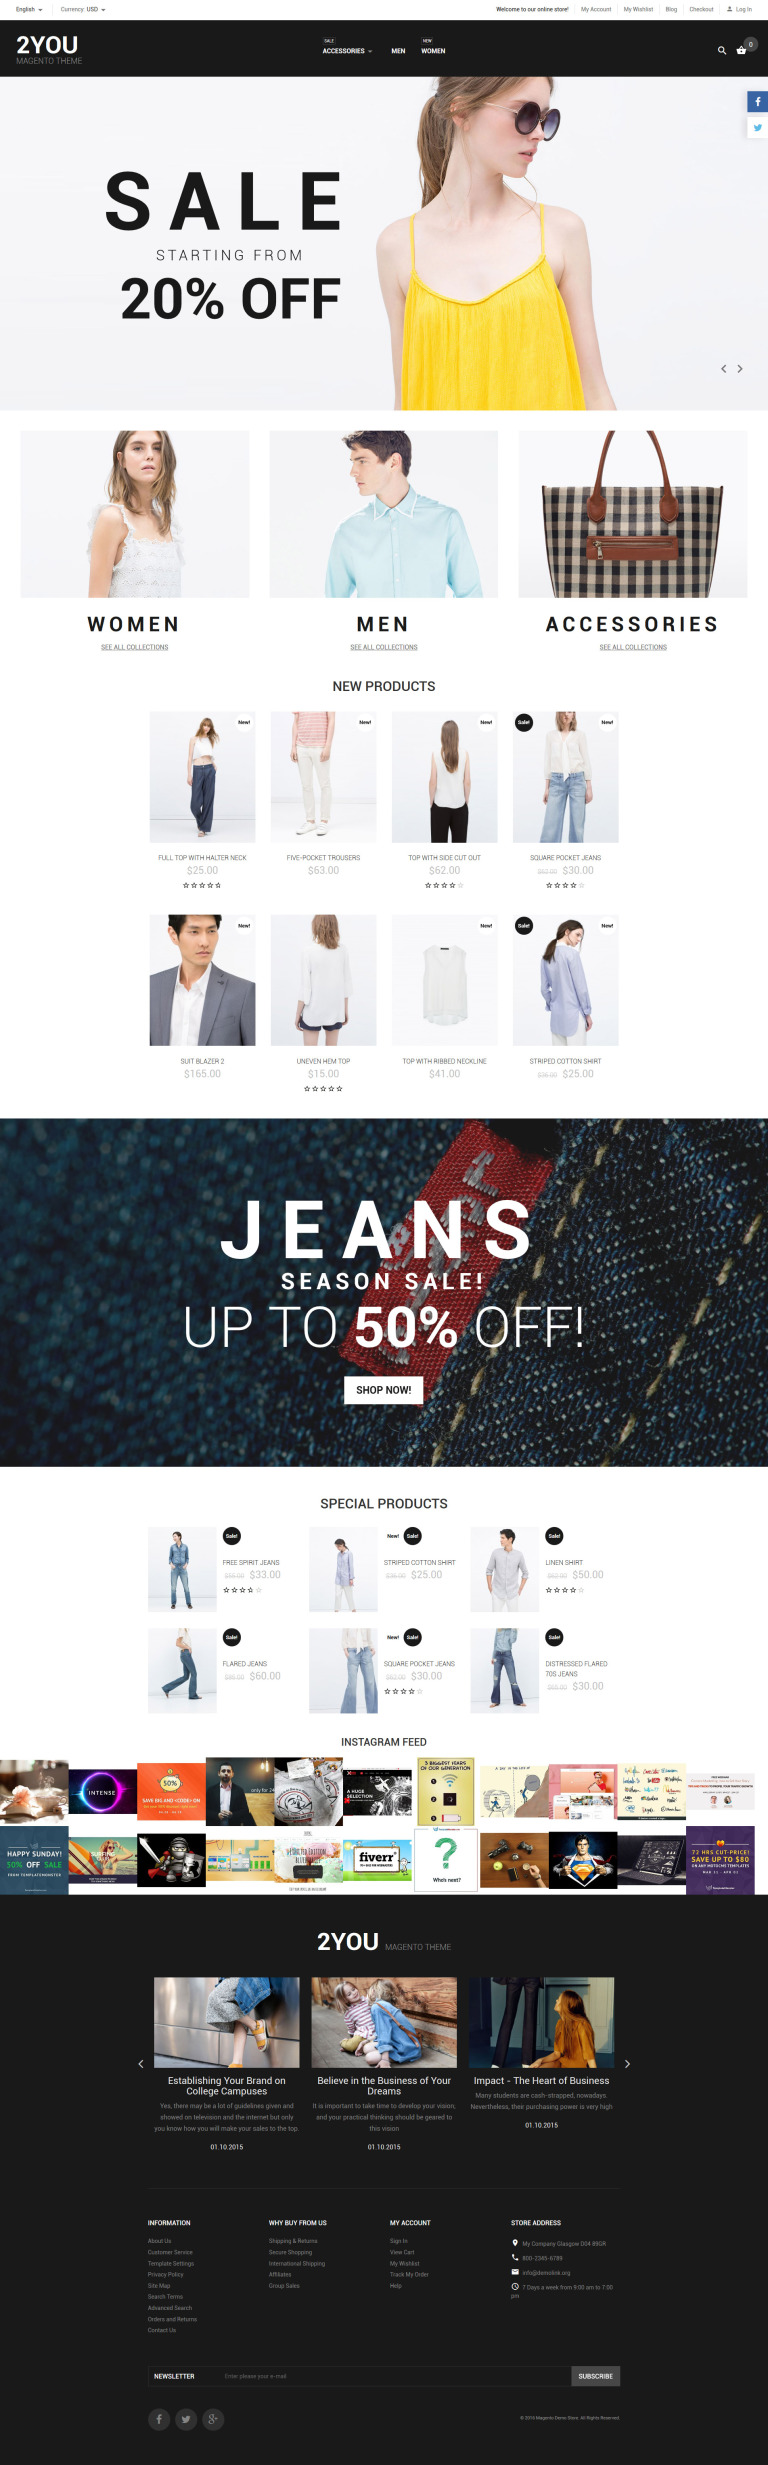 2YOU Magento Theme New Screenshots BIG